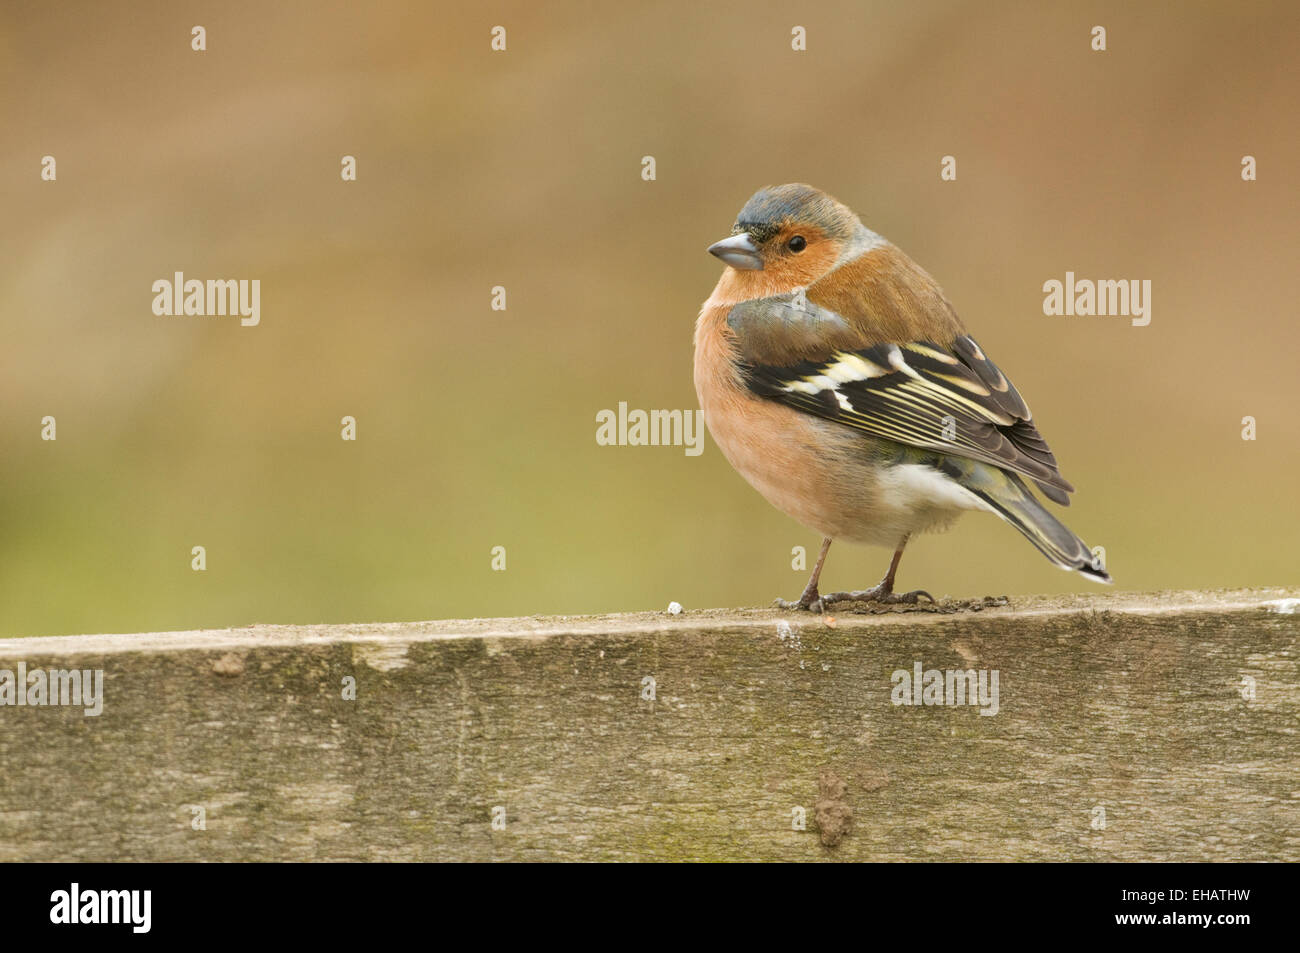 Chaffinch (fringilla coelebs) perched on a fence - Stock Image